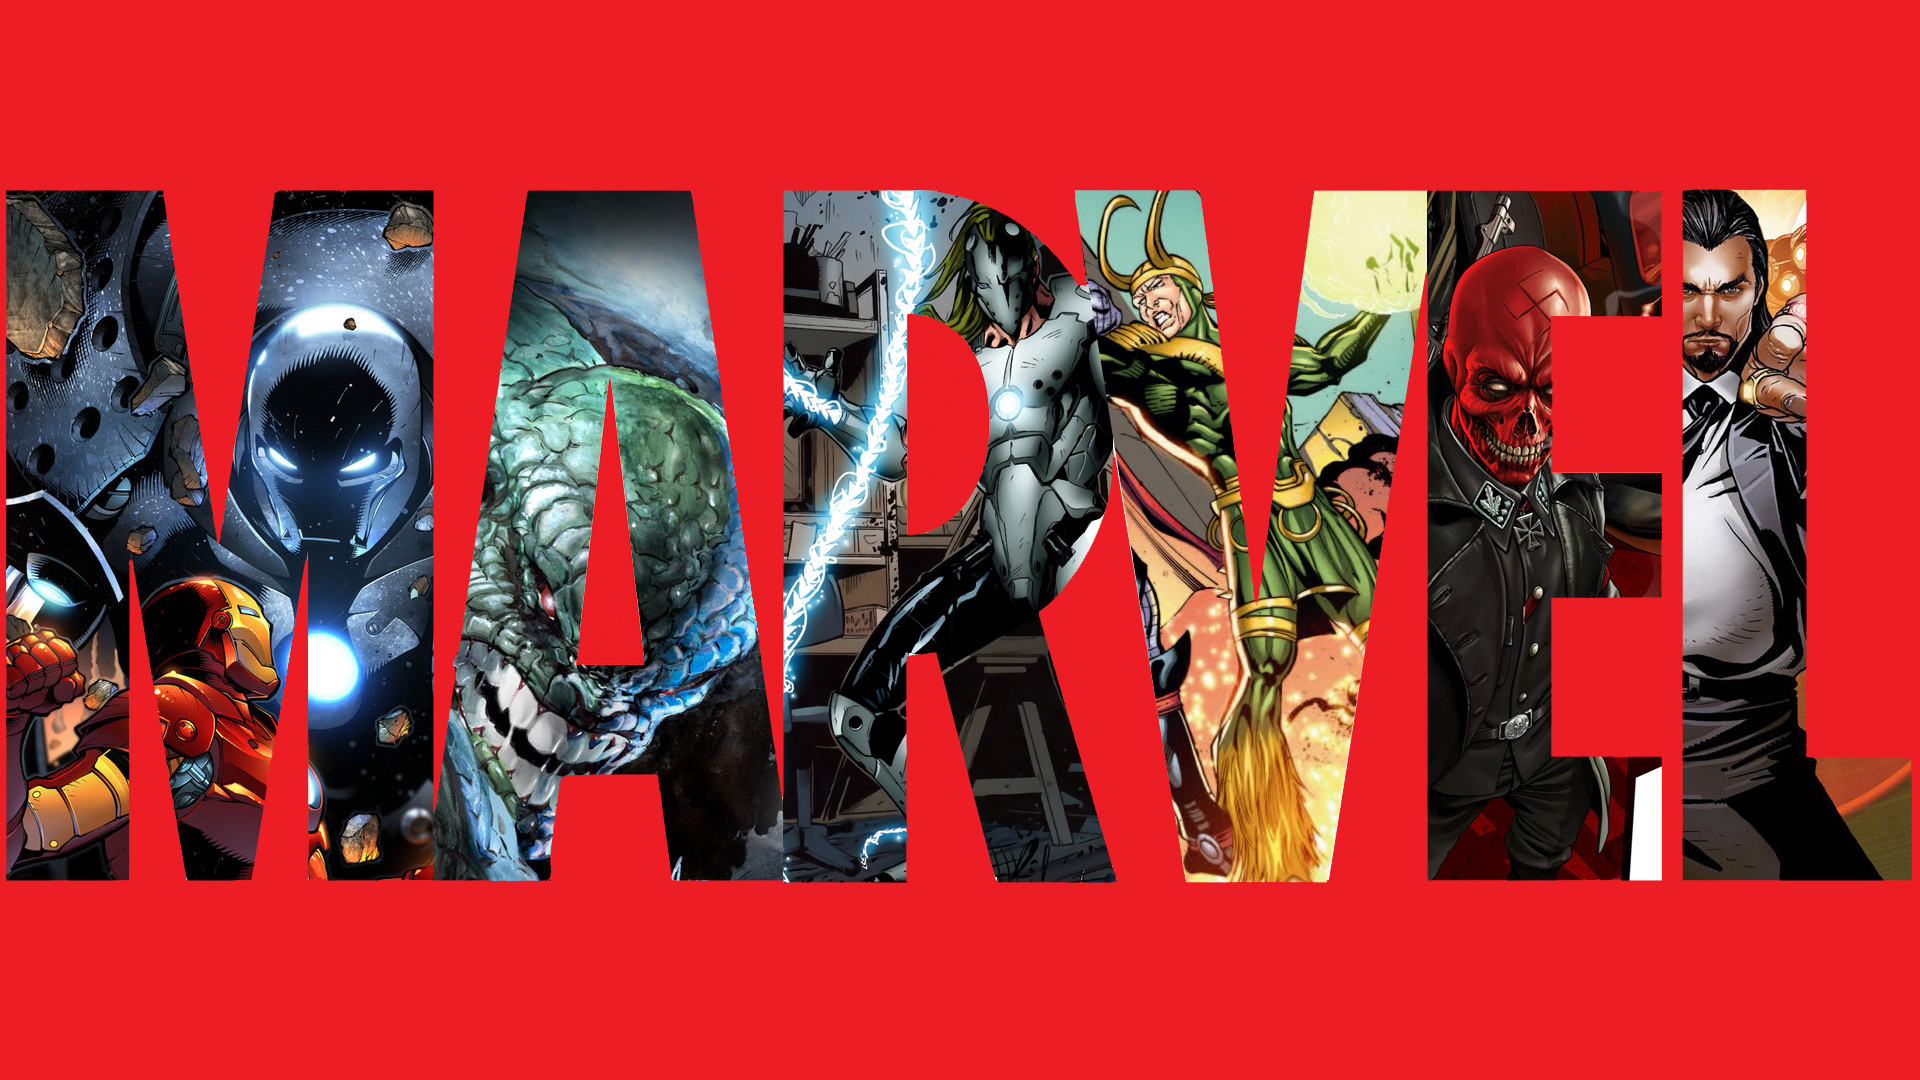 Marvel Computer Wallpapers Desktop Backgrounds 1920x1080 ID 1920x1080